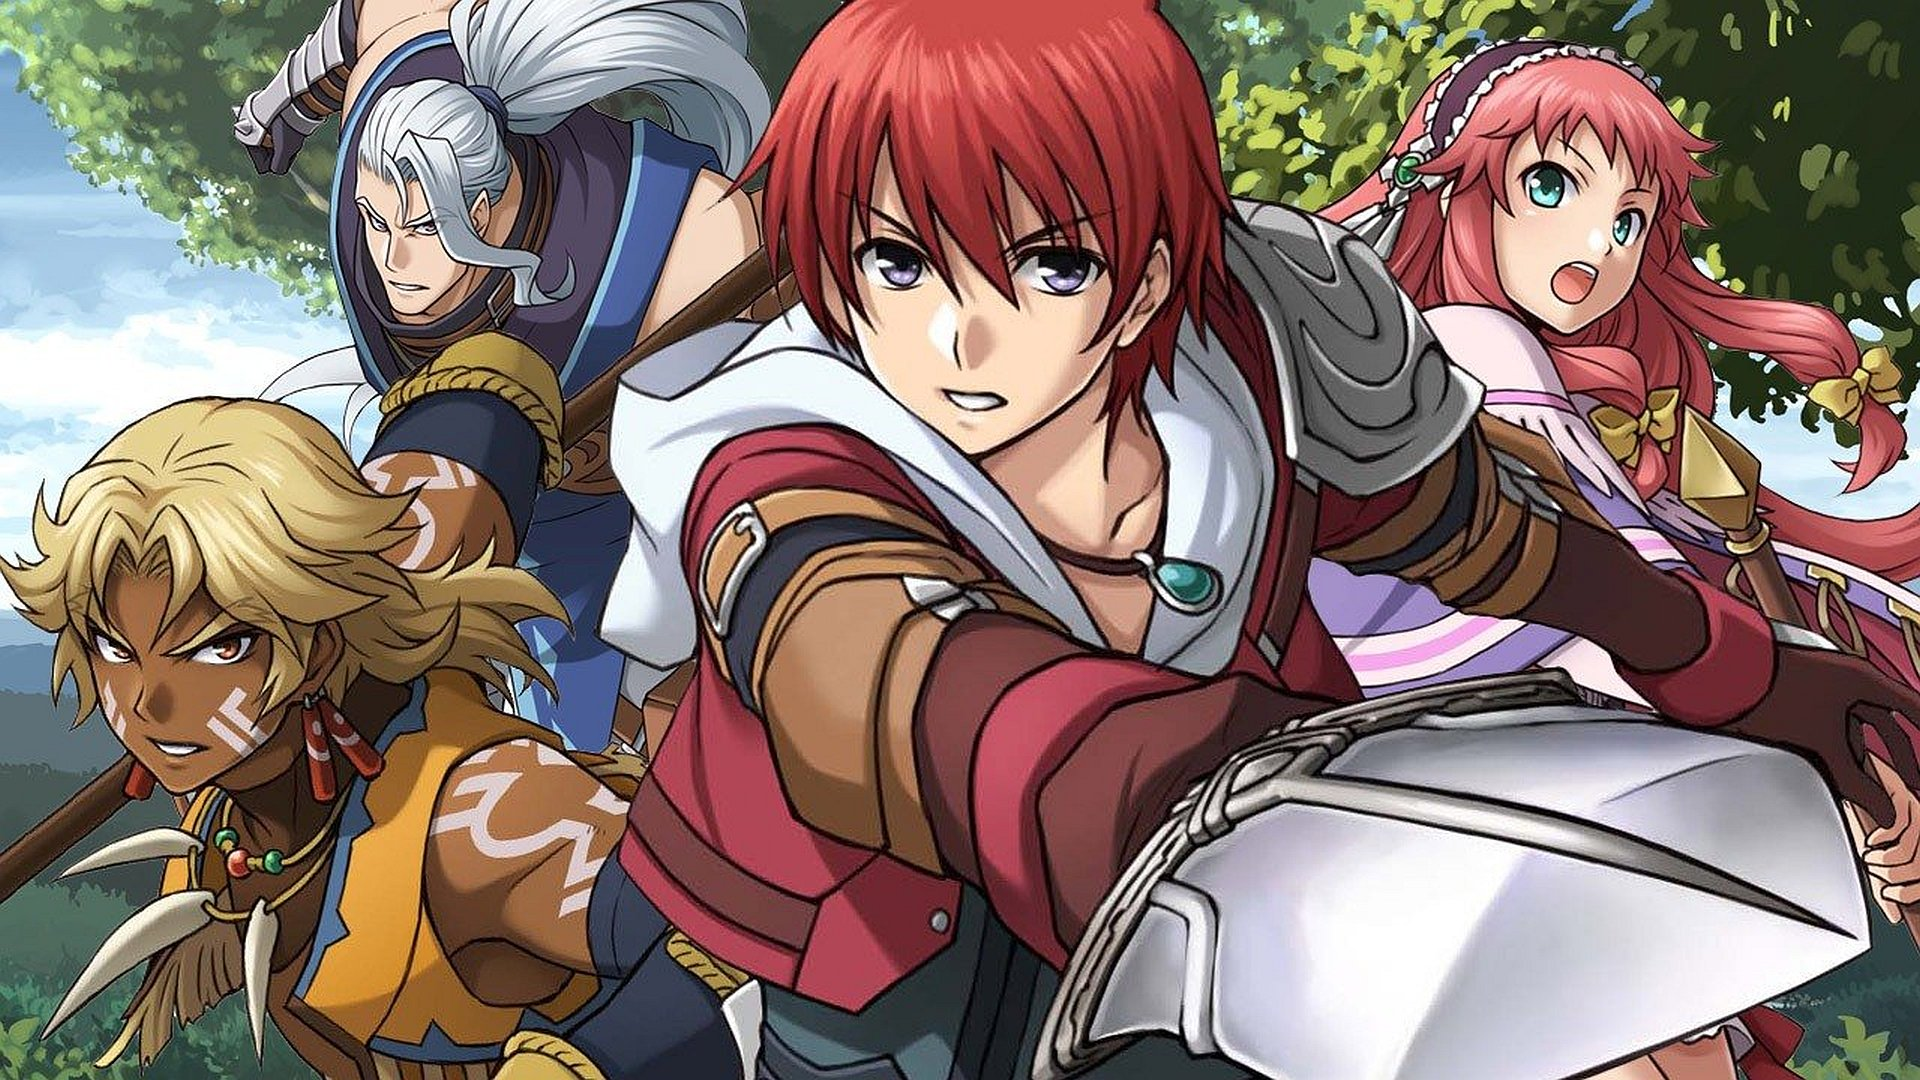 New Ys Game Is In Development To Be Set After Lacrimosa Of Dana